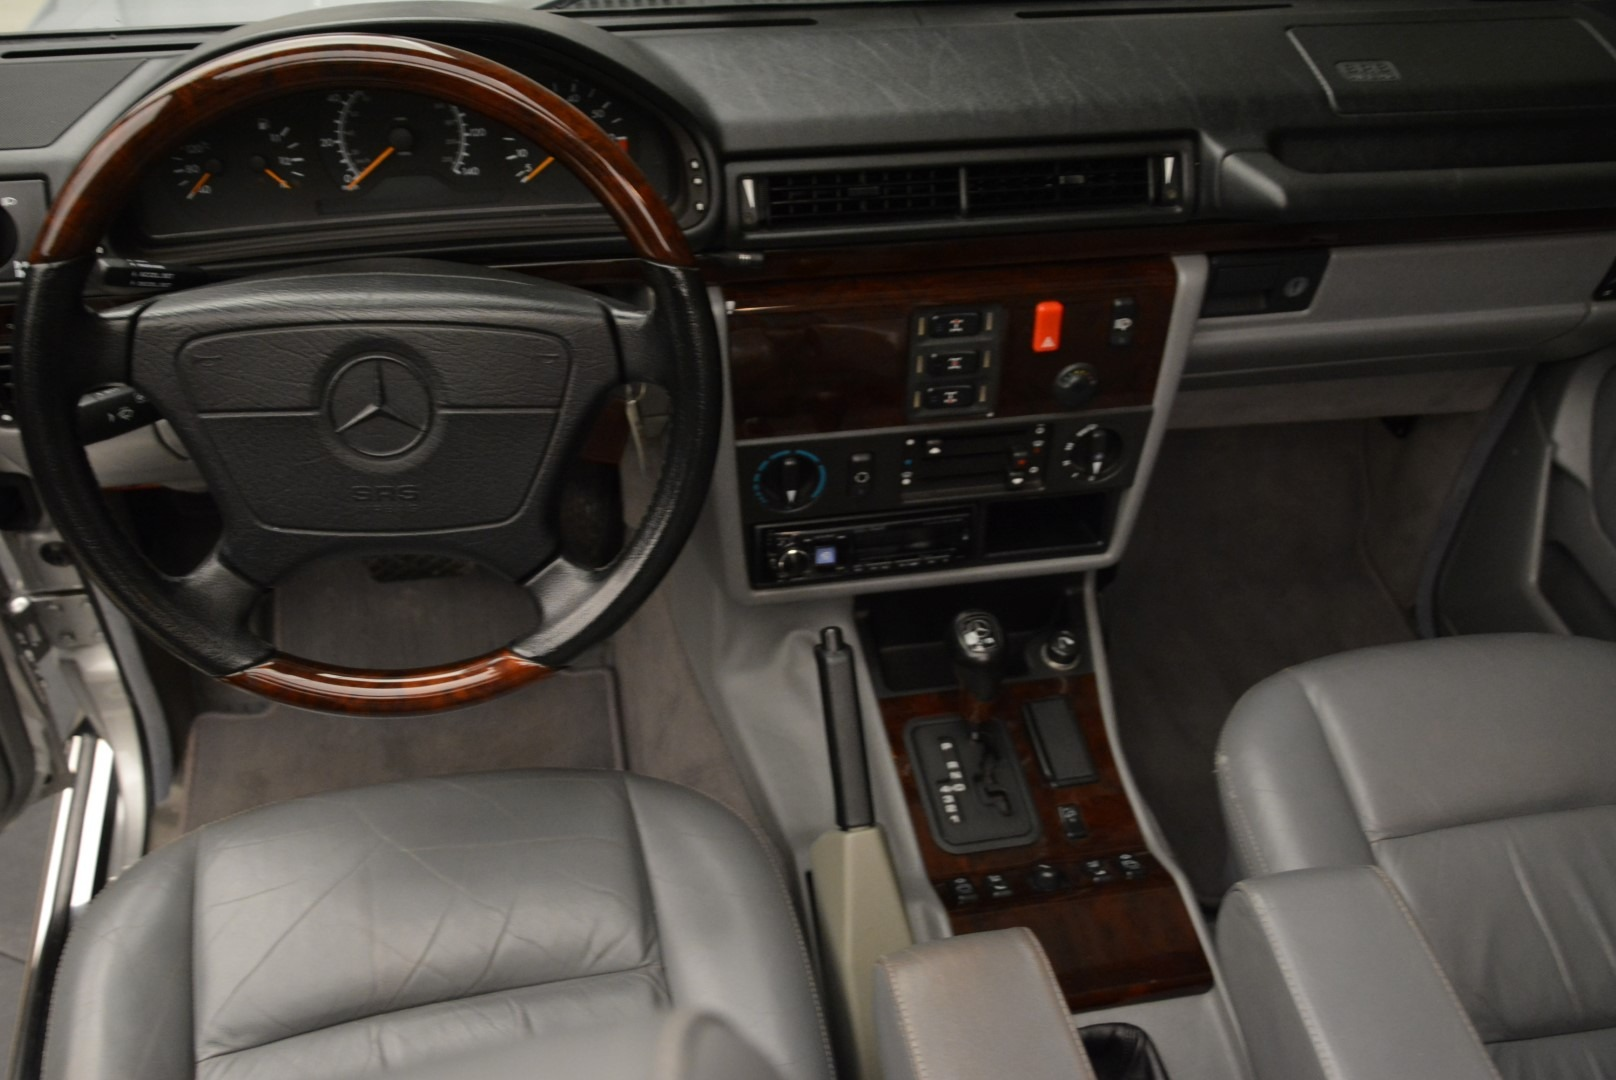 Used 1999 Mercedes Benz G500 Cabriolet For Sale In Greenwich, CT 1961_p25